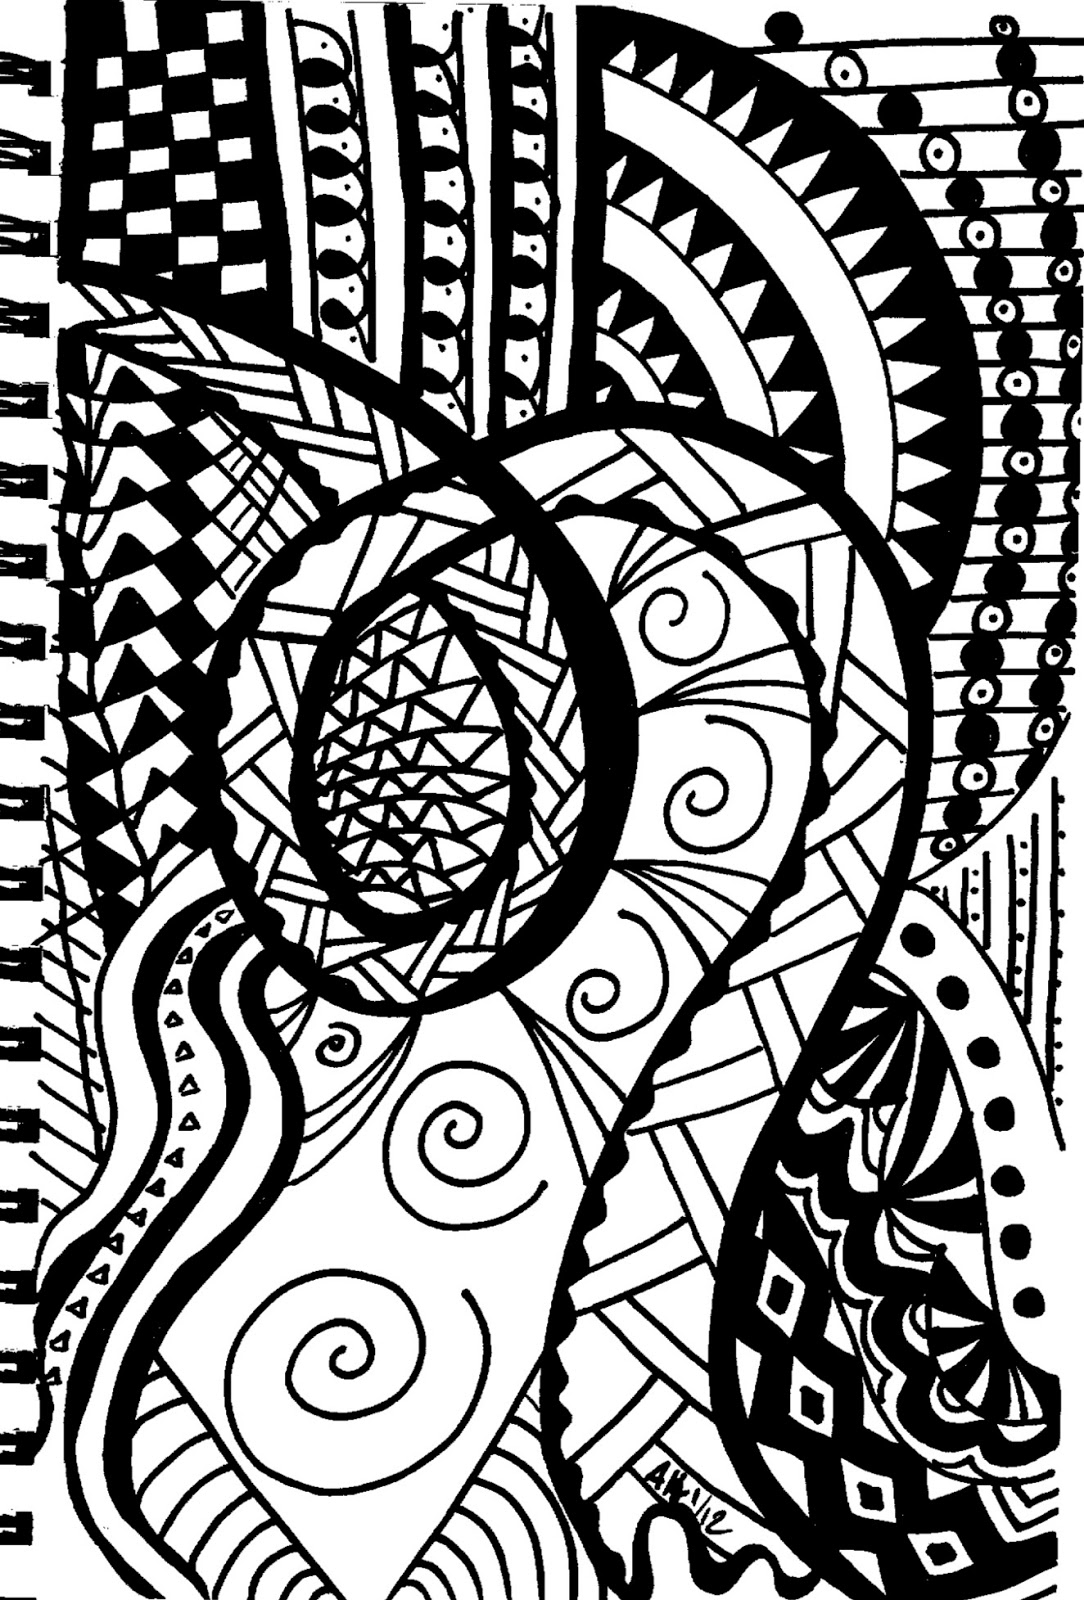 Easy Abstract Doodles images